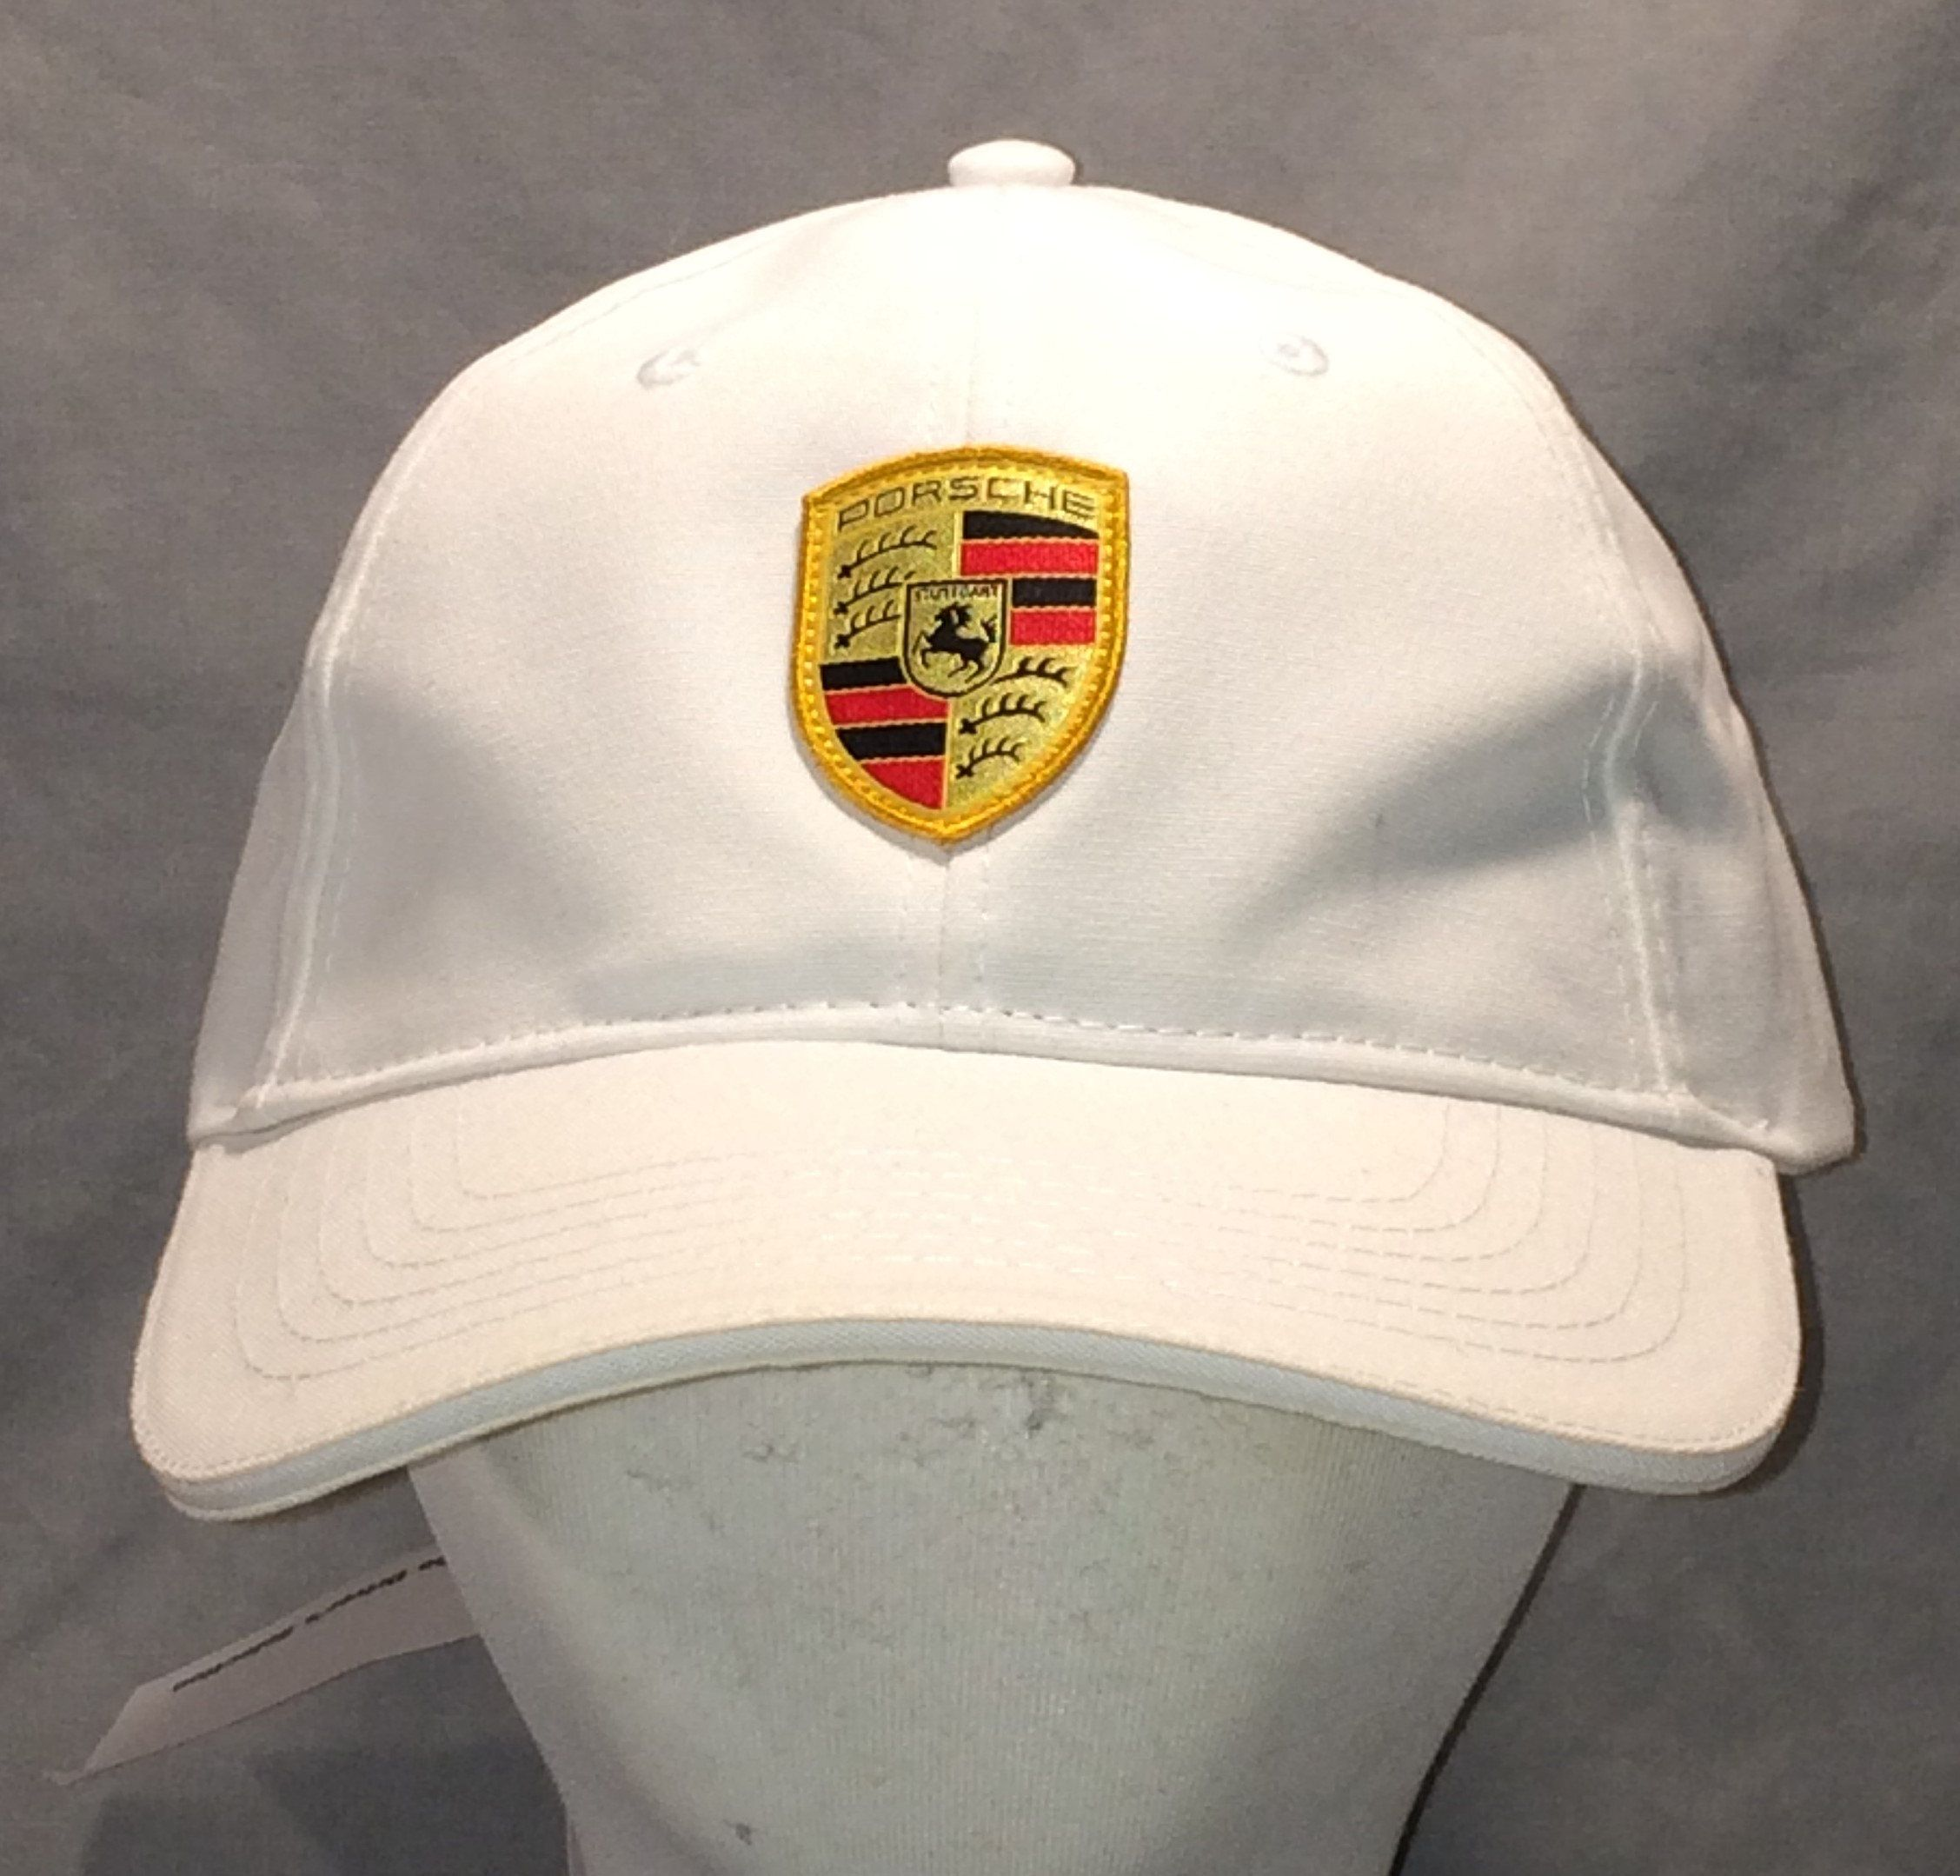 Pin by EXtRaRarE on Hats&Headwear Cool dad hats, White